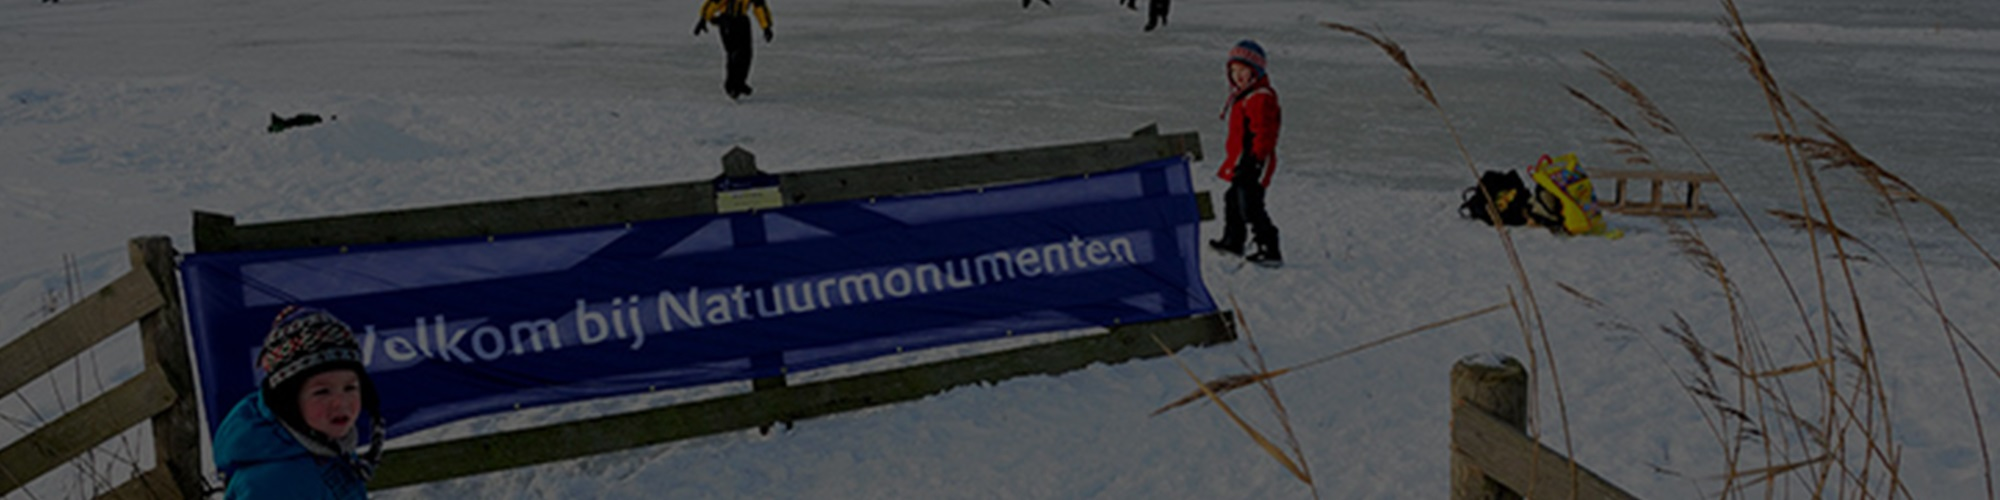 Children in the snow next to a Natuurmonumenten banner.